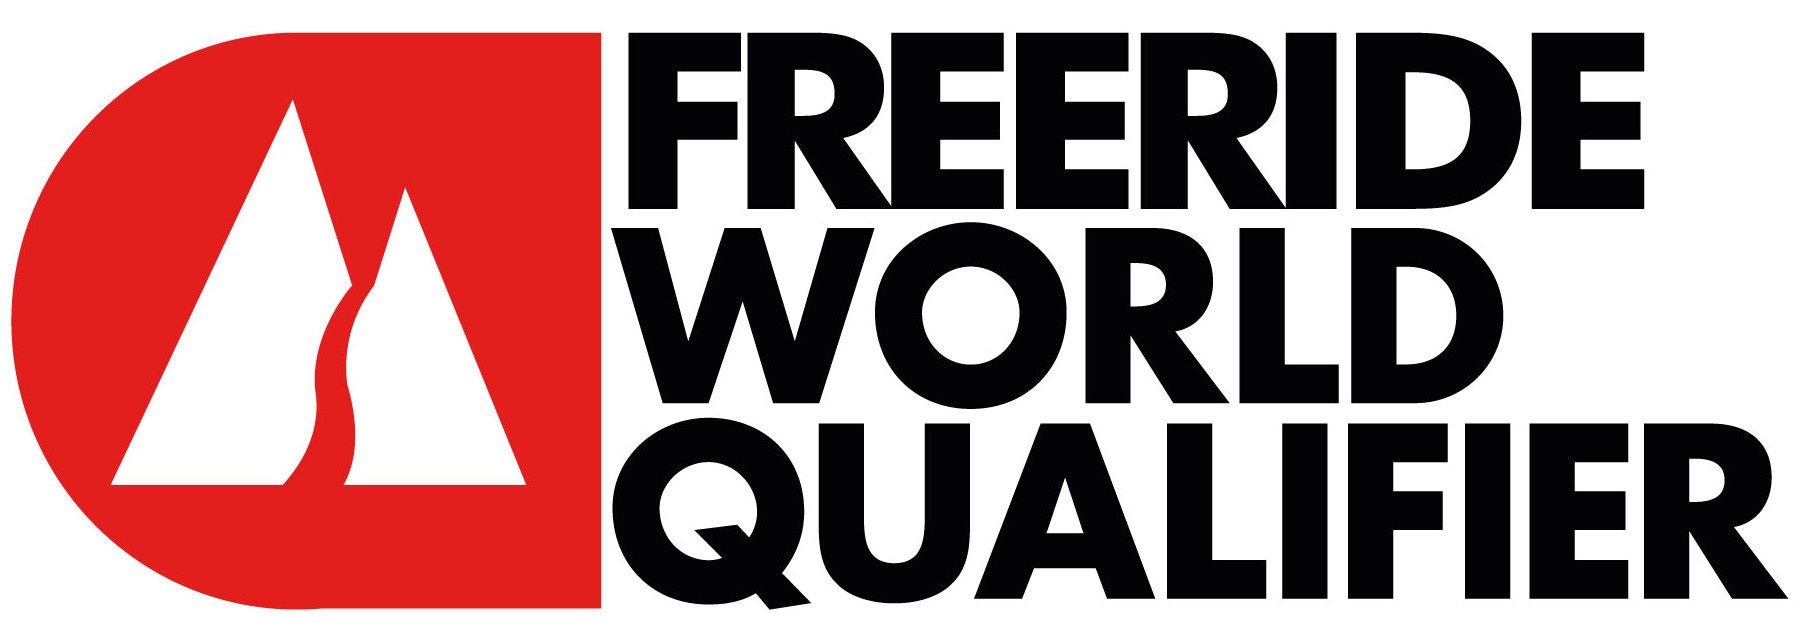 Freeride World Qualifier (FWQ)